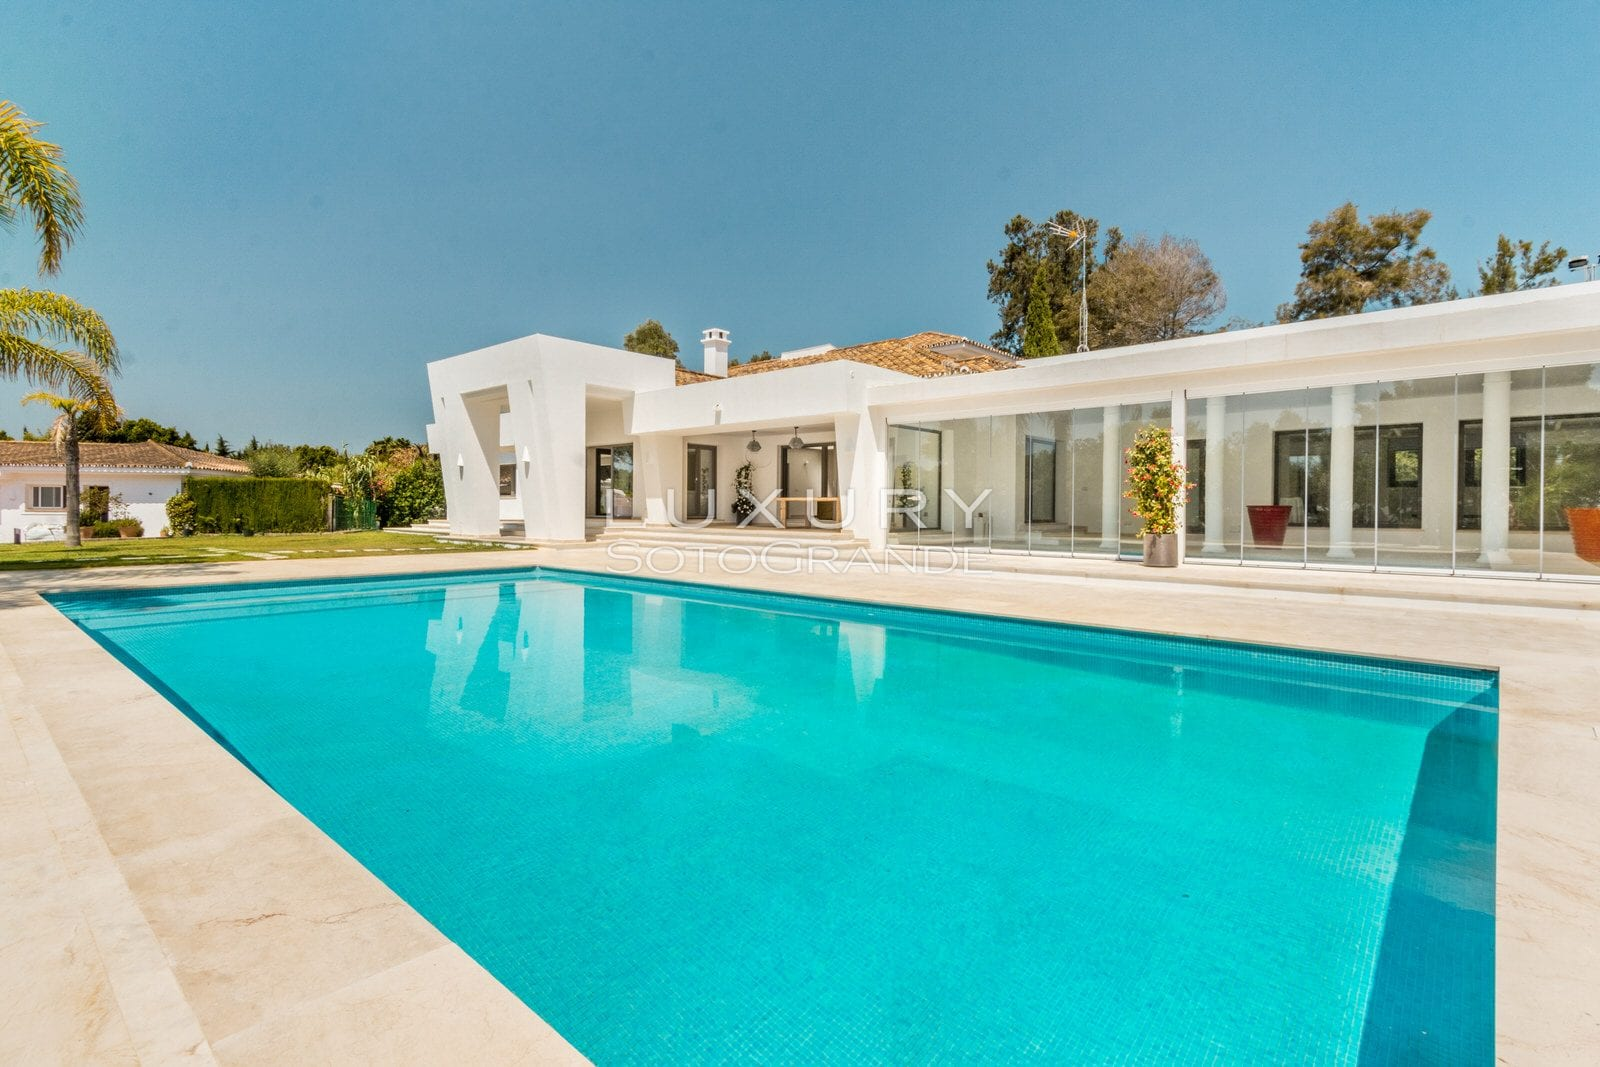 Spectacular Villa on a double plot for Sale in Kings and Queen, recently refurbished